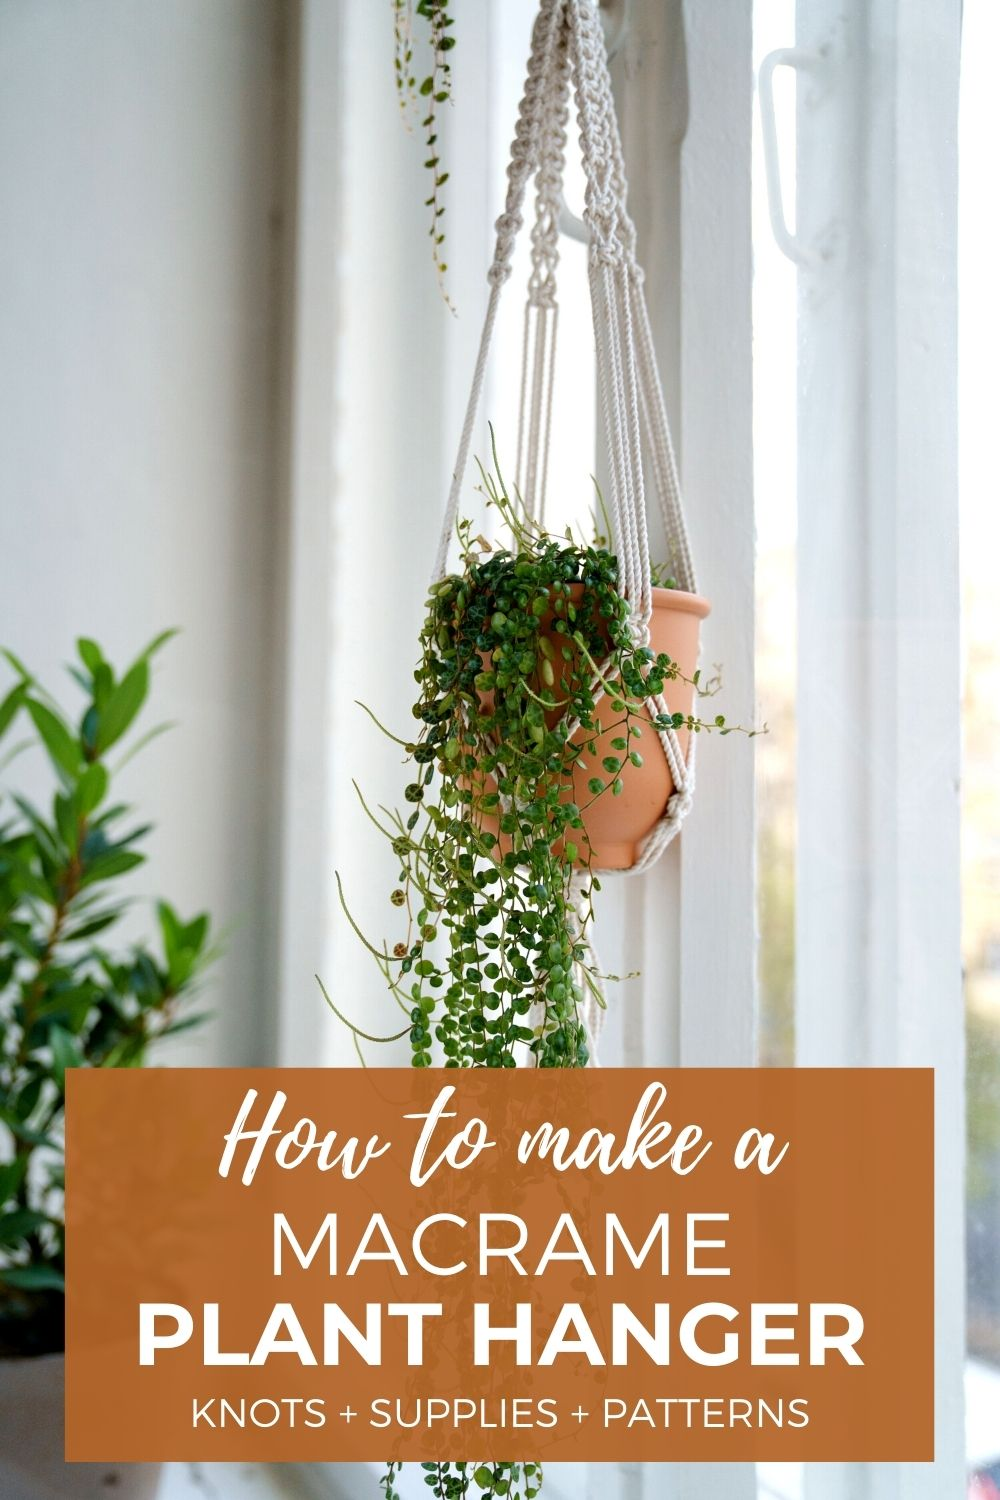 How to Make a Macrame Plant Hanger – Best Tips for Beginners